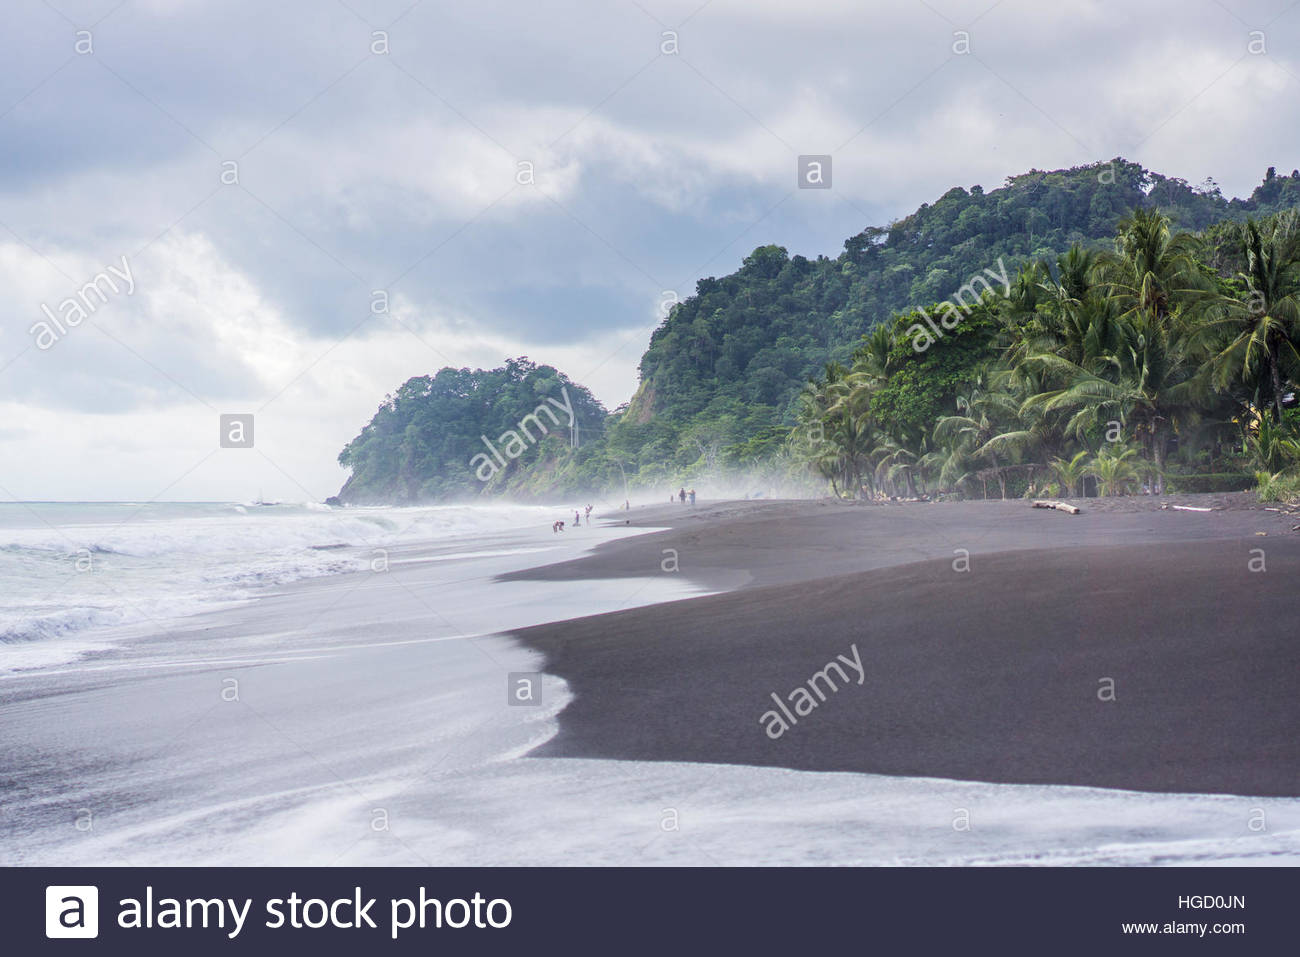 Playa Hermosa, costa rica, Amérique centrale 2015 Photo Stock